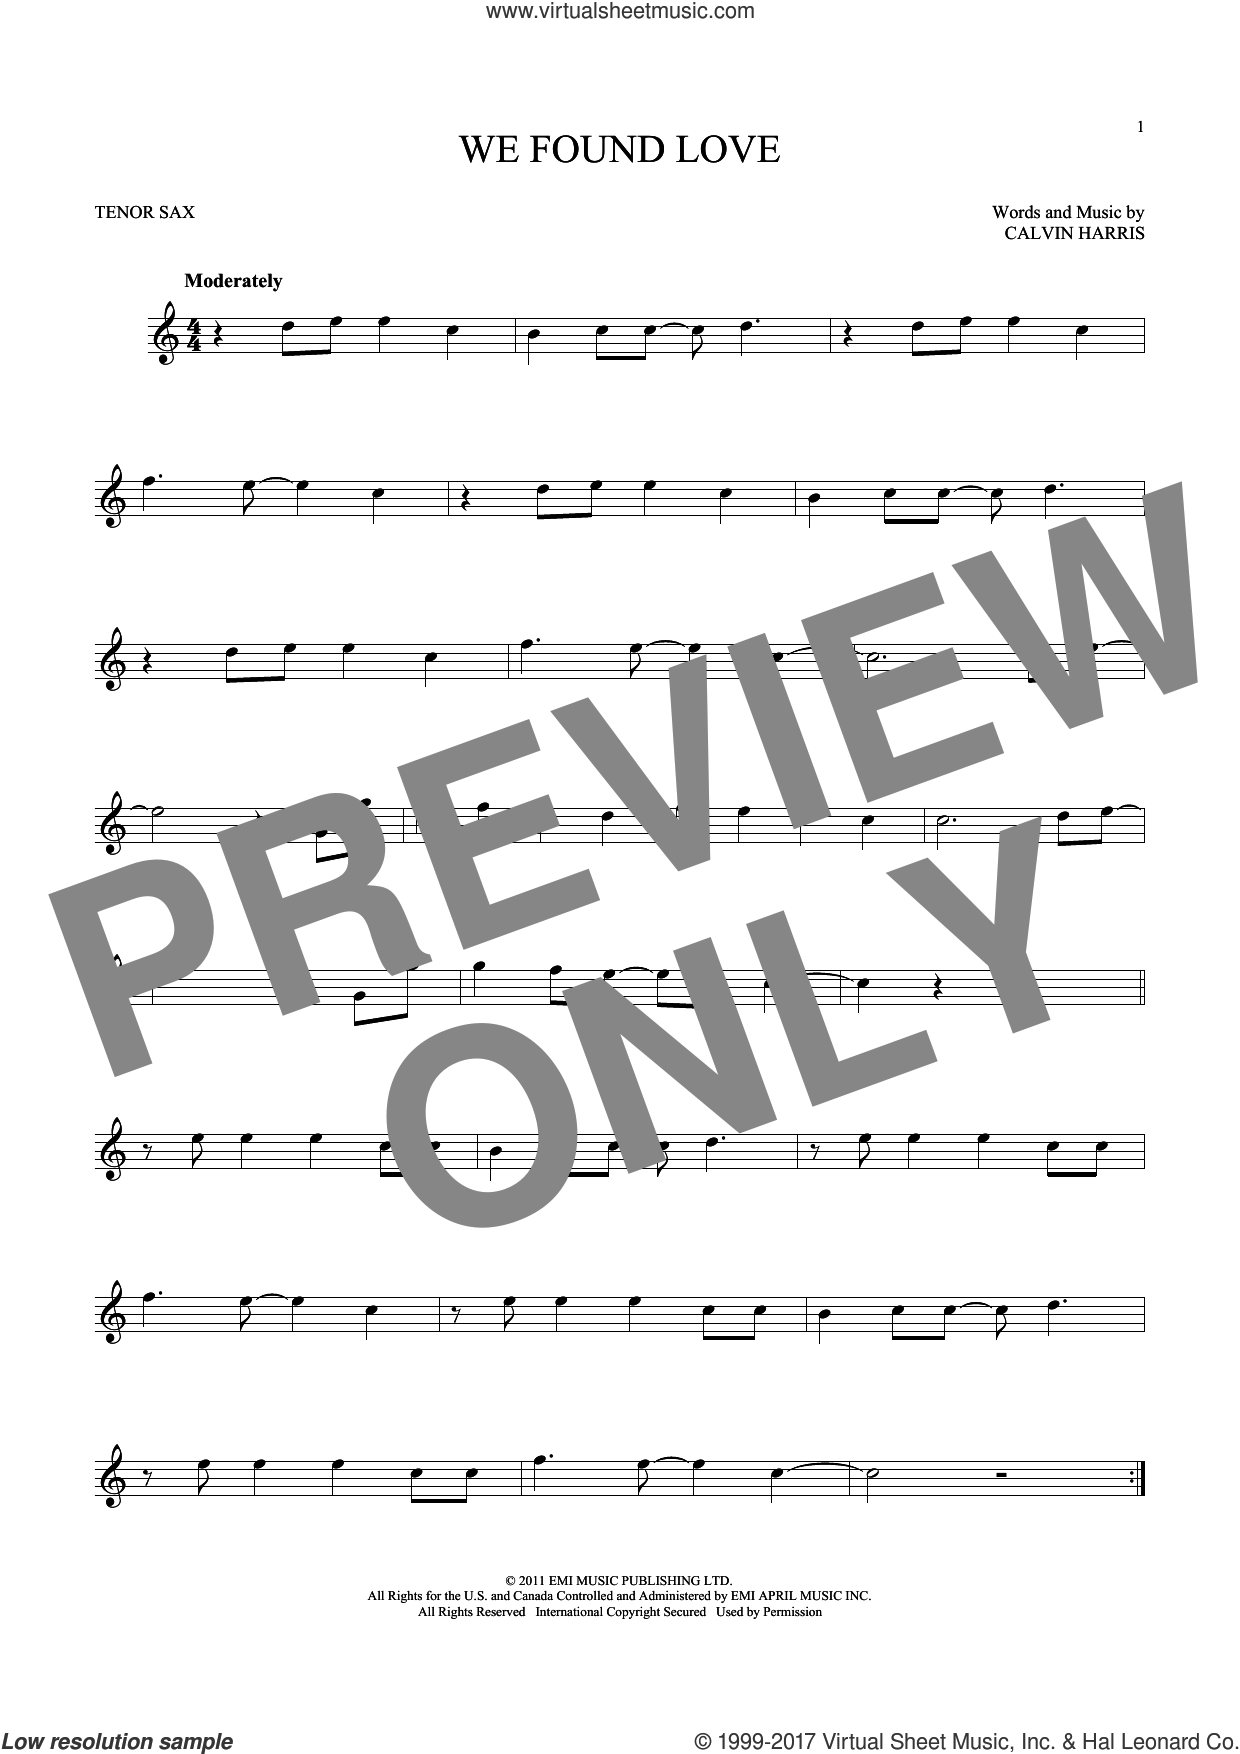 We Found Love sheet music for tenor saxophone solo ( Sax) by Rihanna featuring Calvin Harris and Calvin Harris, wedding score, intermediate tenor saxophone ( Sax)